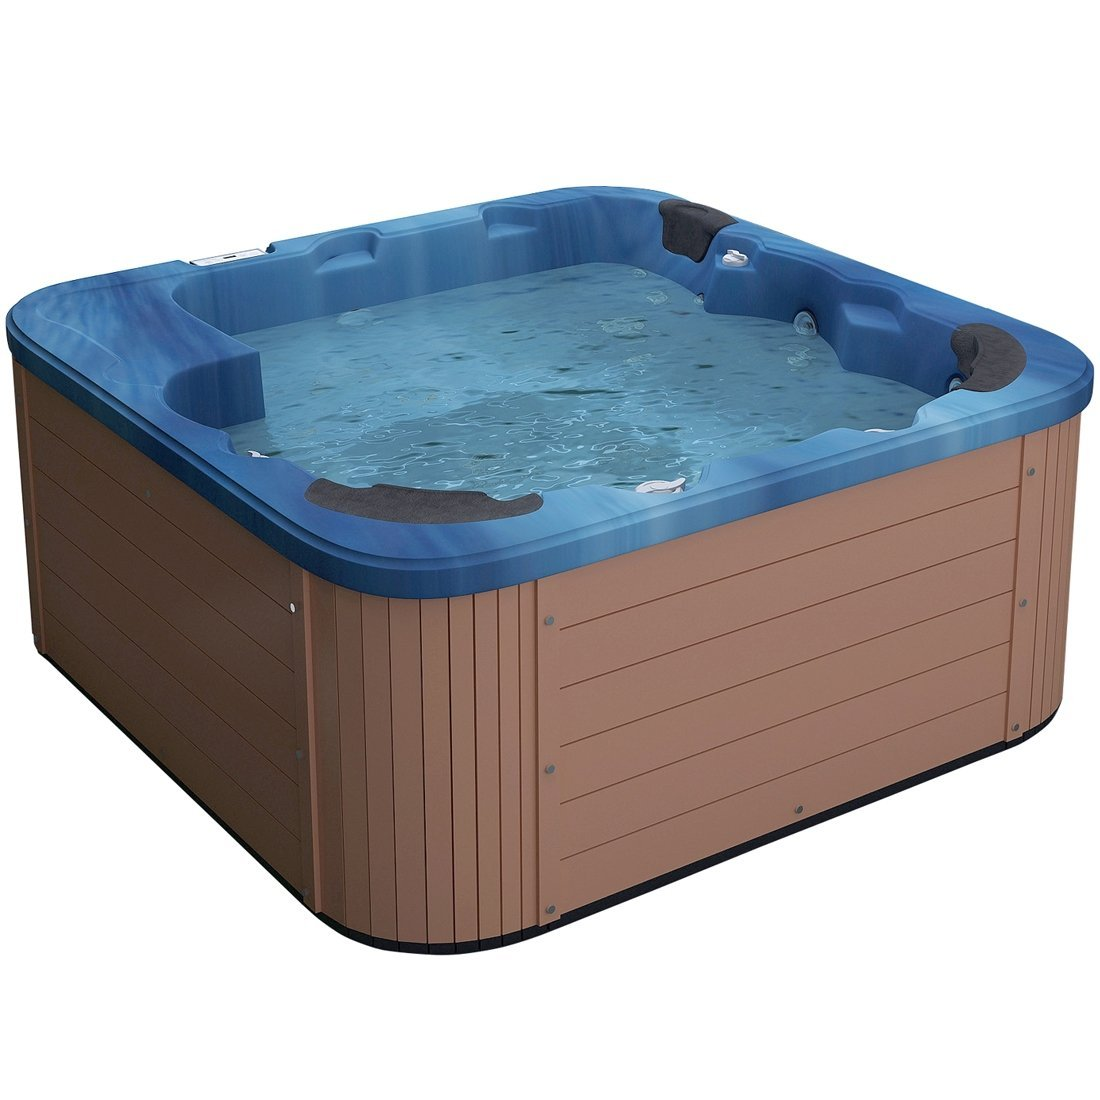 Outdoor Spa - Jacuzzi - Heated - 40 Jets - Acrylic and Wood - Blue ...